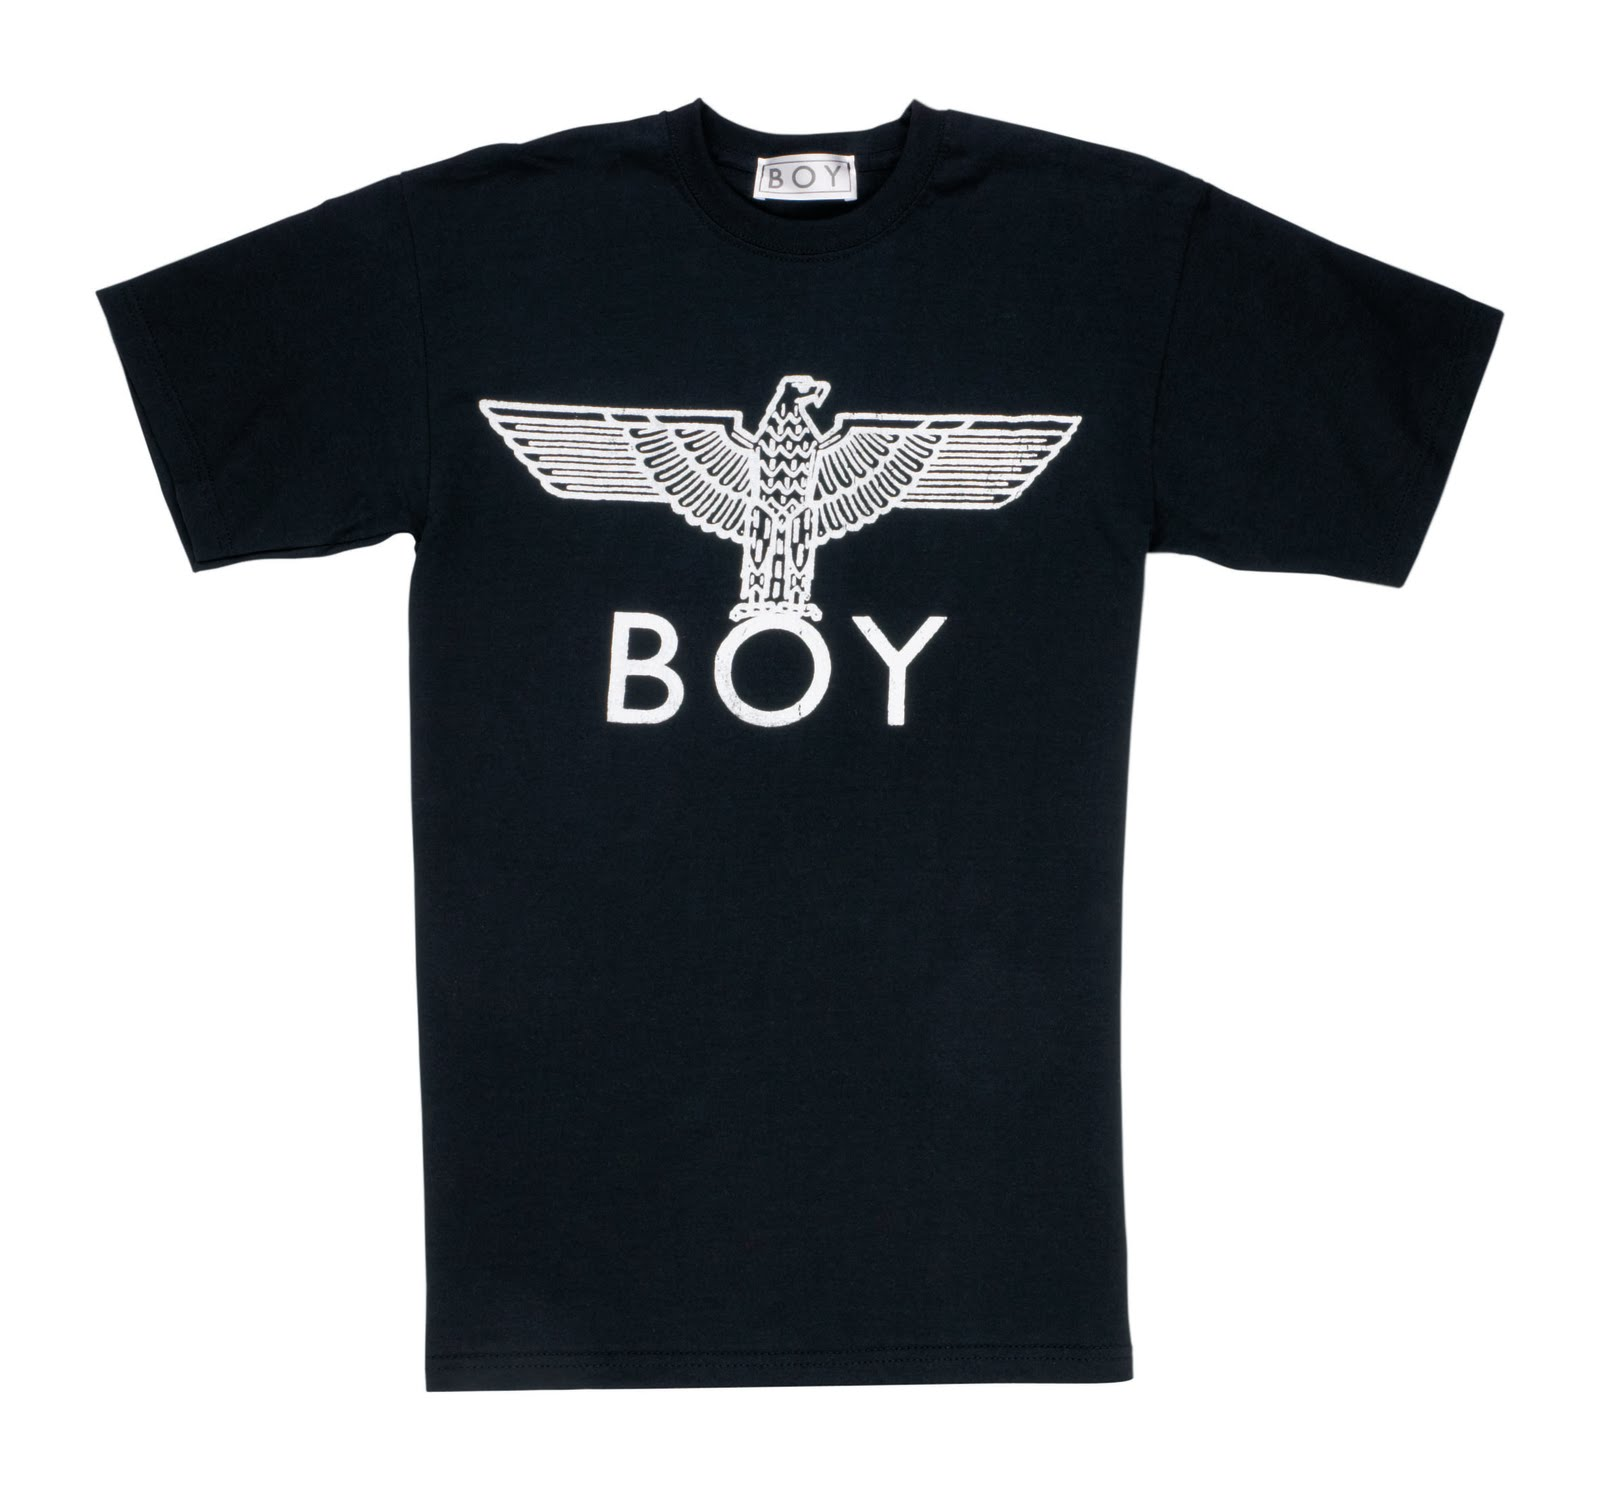 Boy london black tee_ISOv2